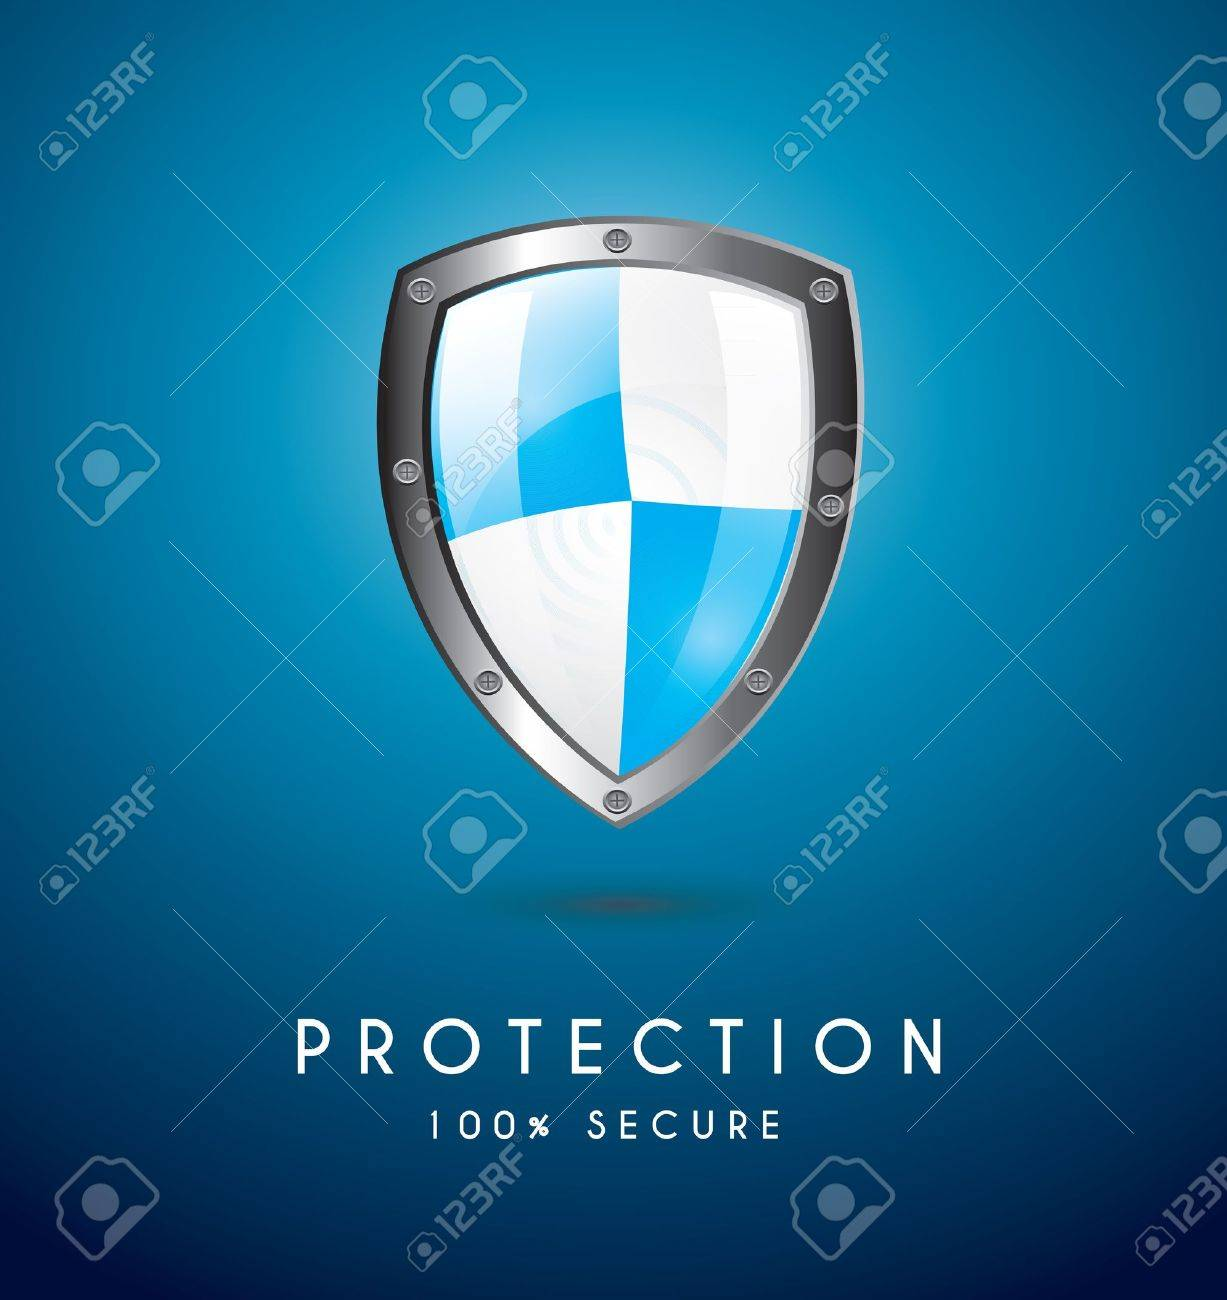 Protection icon over blue background vector illustration Stock Vector - 17428098